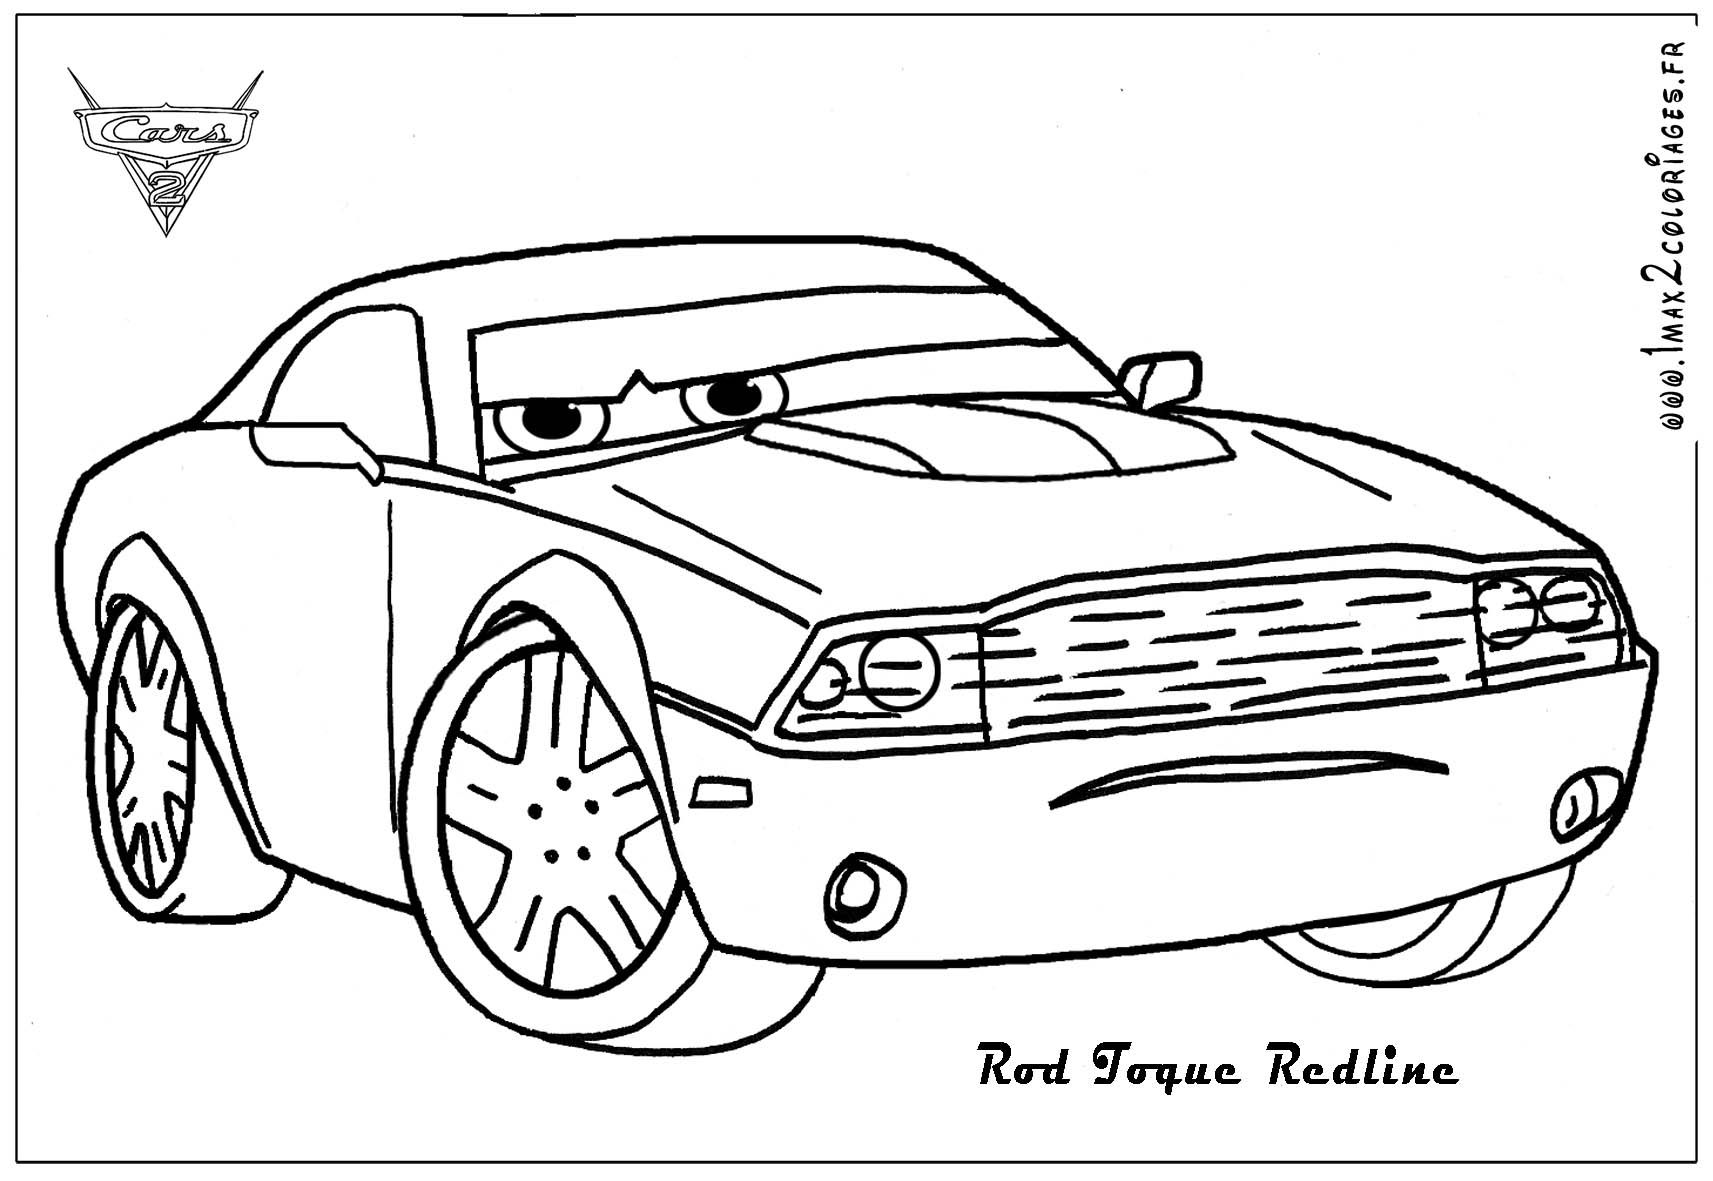 cars 2 printable coloring pages pictures coloring page cars 2 ajilbabcom portal - Coloring Pages Car 2